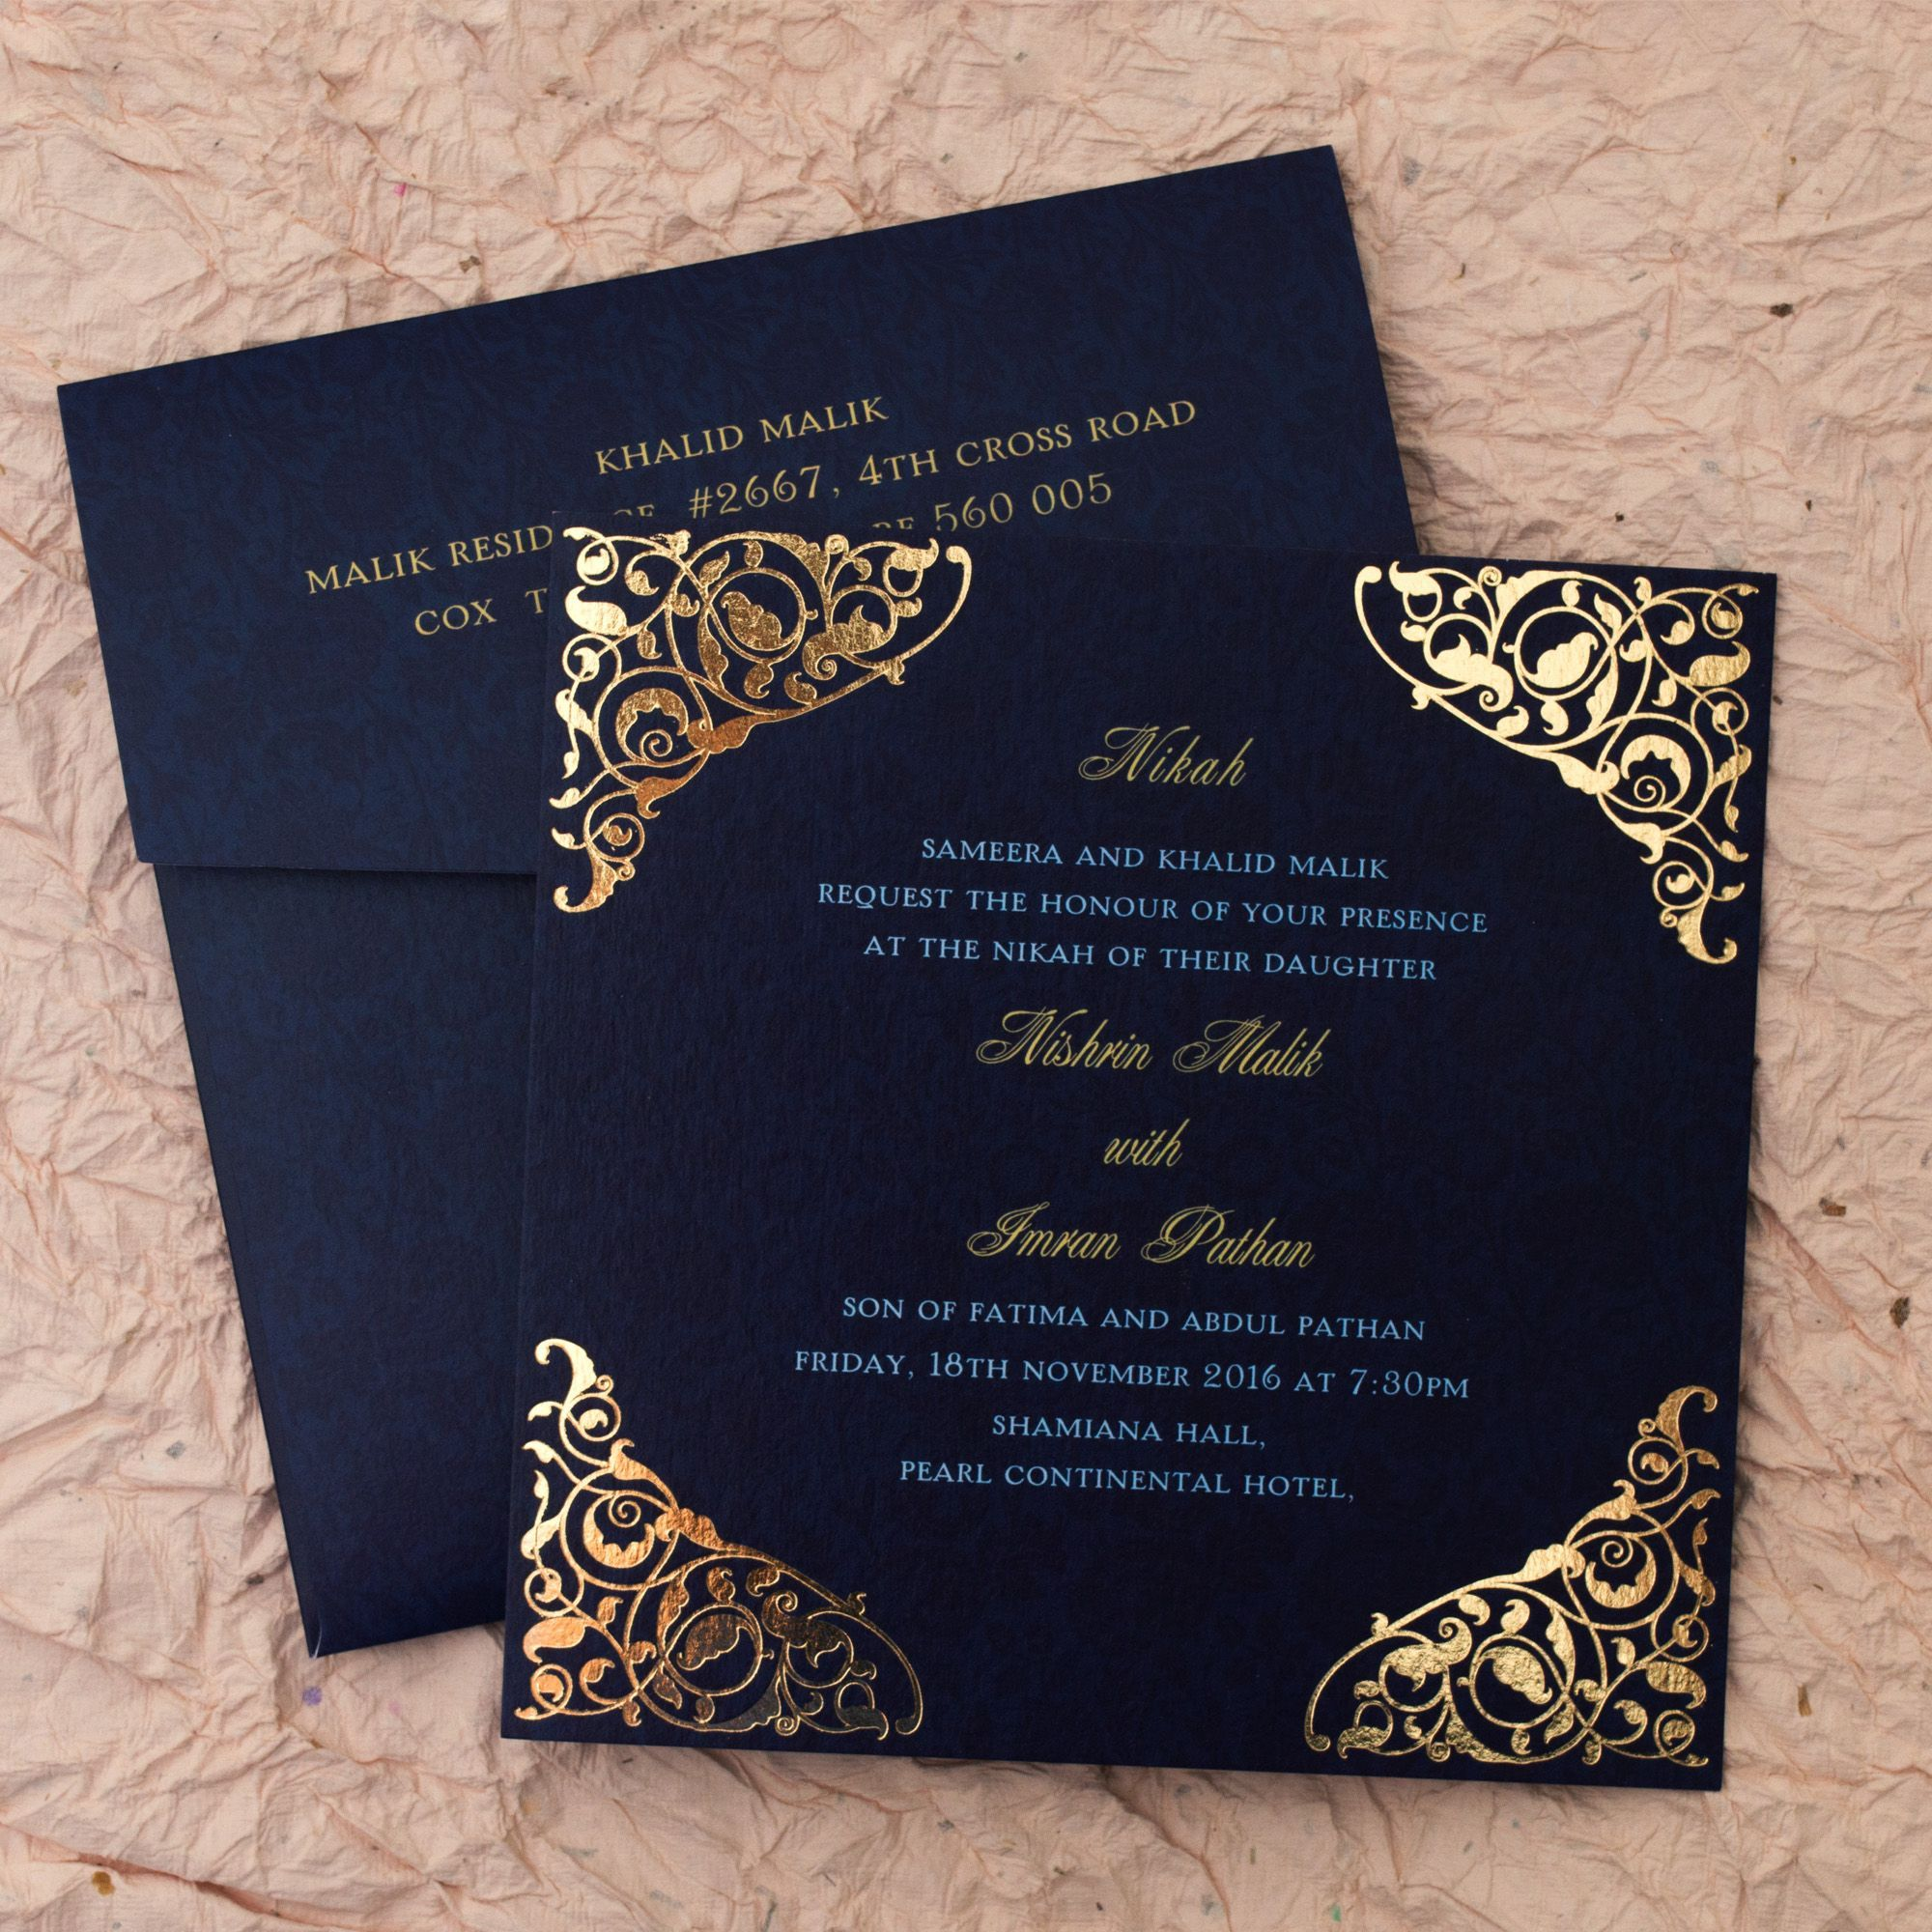 Gulshan Blue Wedding Islamic Cards Add A Touch Of Elegance To Your Nikah With This Handc Kartu Pernikahan Kartu Undangan Pernikahan Desain Undangan Perkawinan